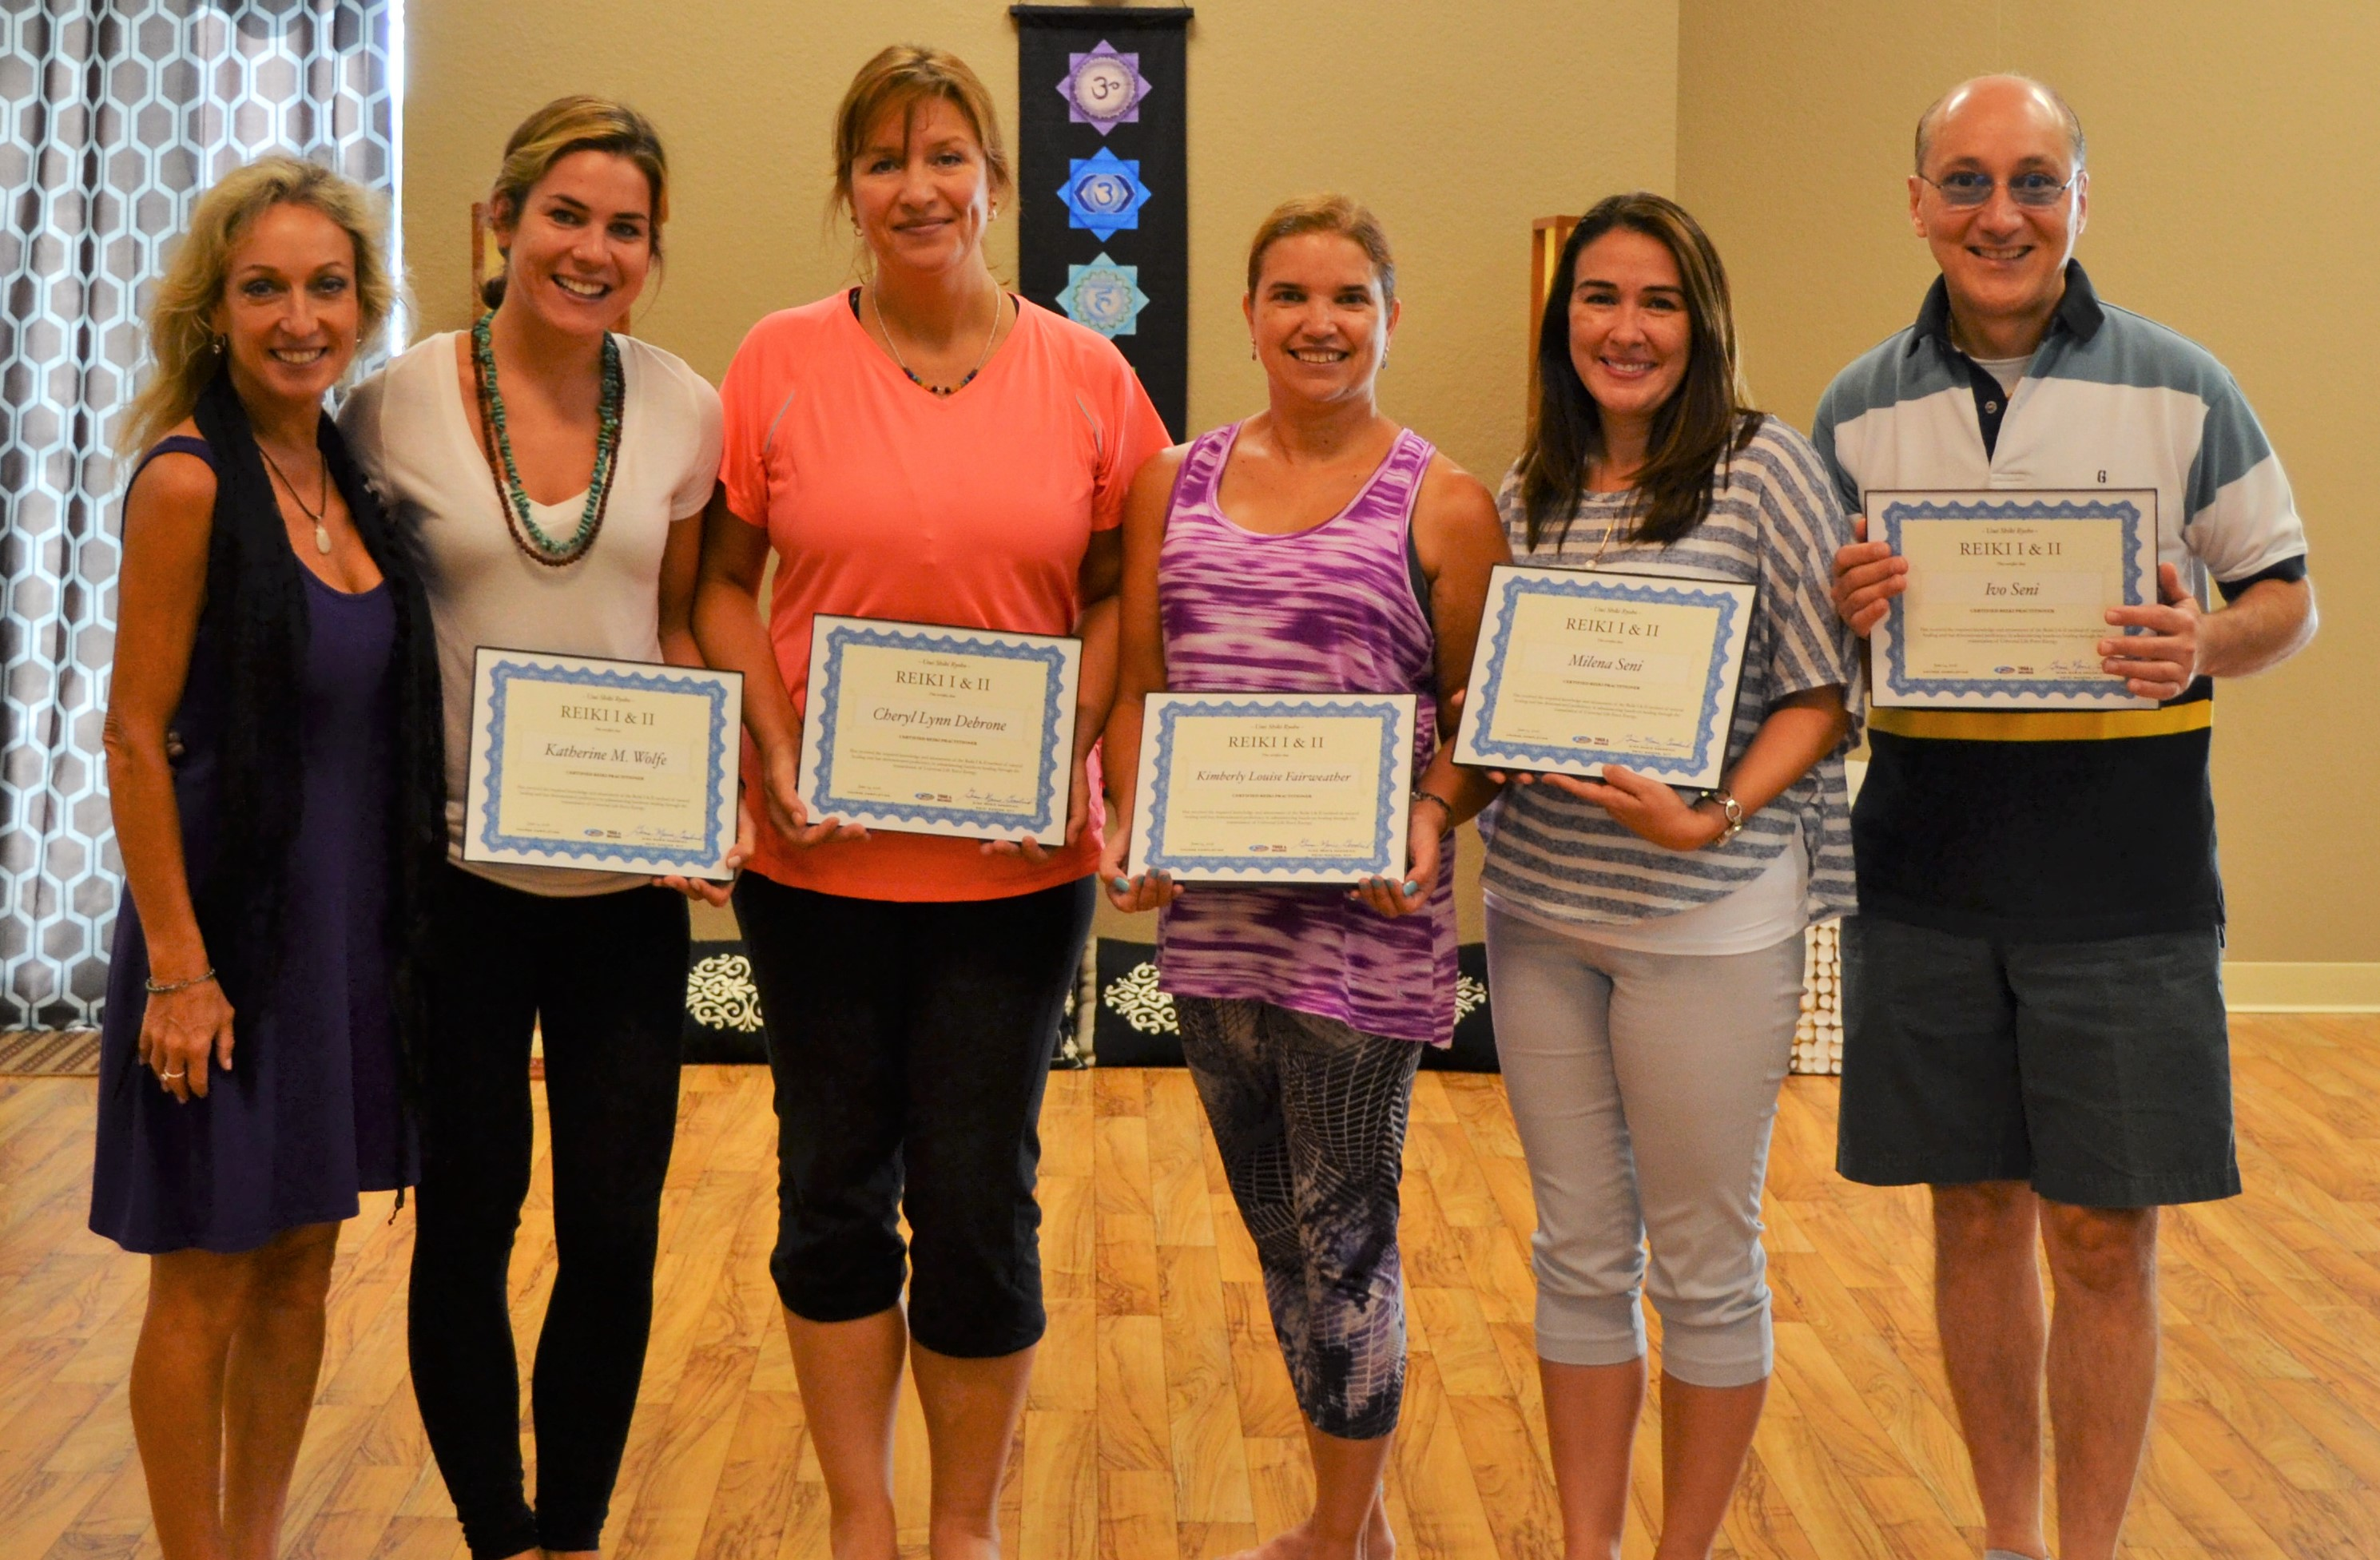 Fusion's 1st EVER Reiki I & II Certification & Training Course